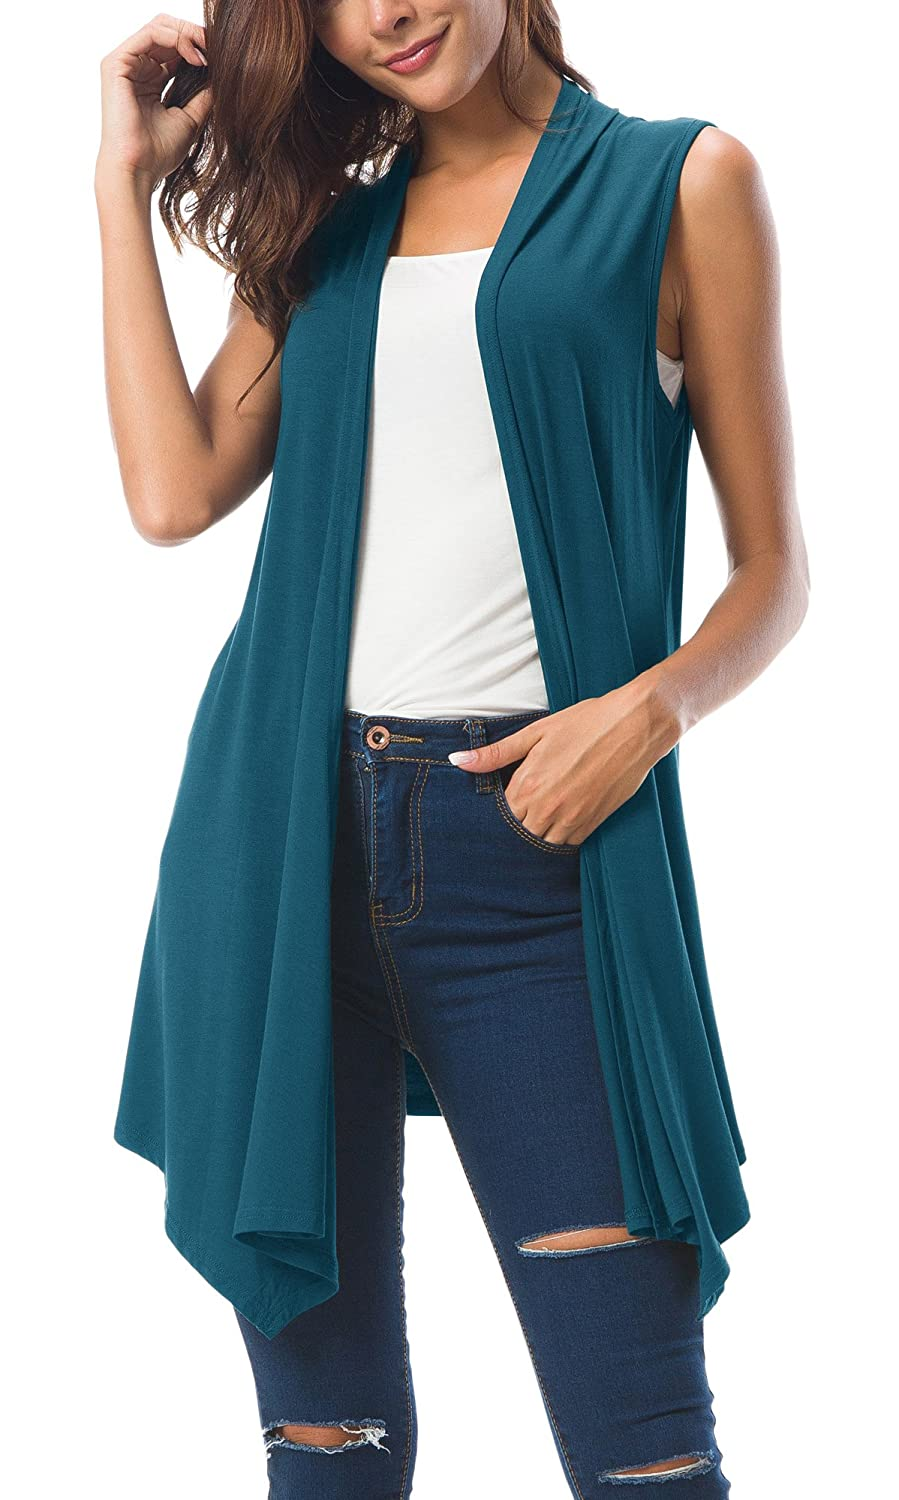 Urban CoCo Women's Sleeveless Draped Open Front Cardigan Vest Asymmetric Hem